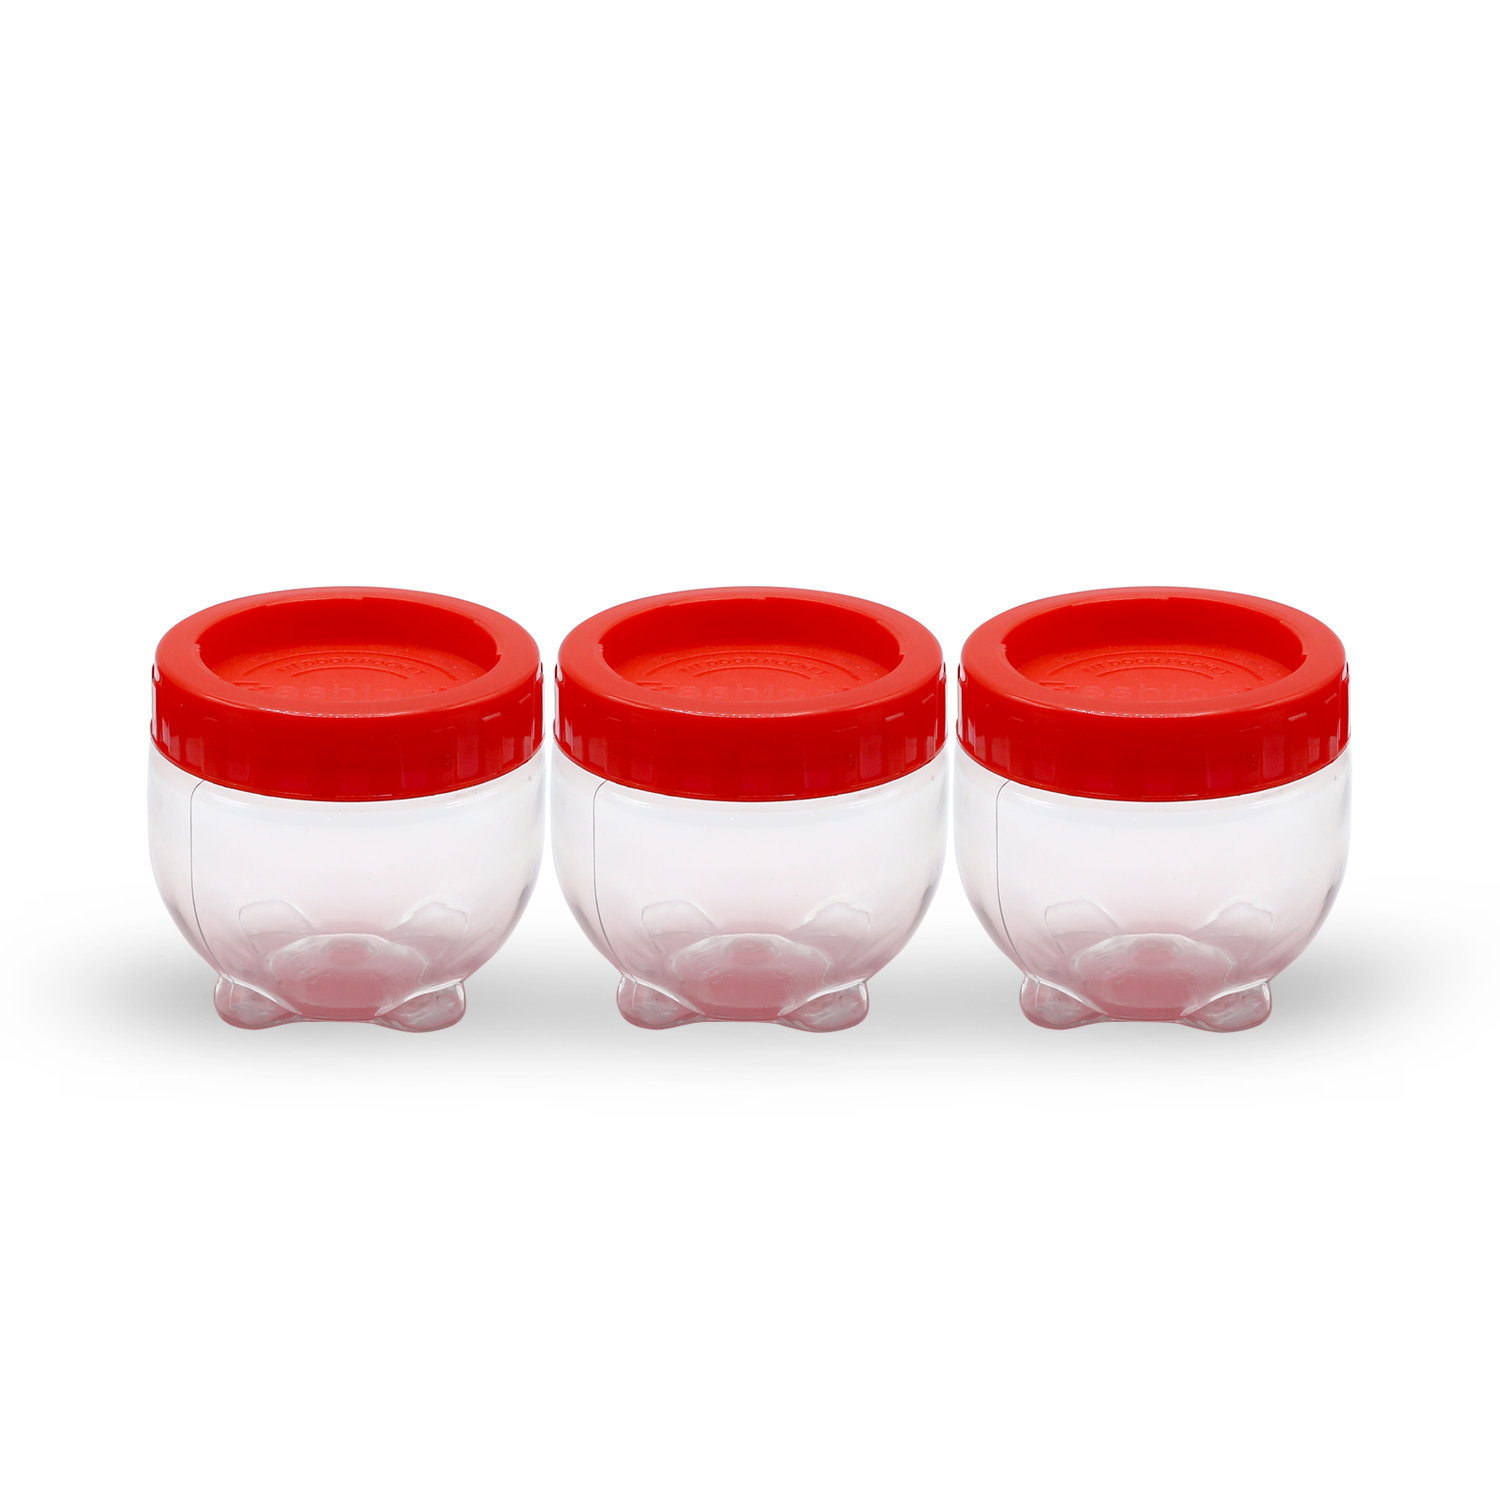 Novel Plastic Interlock Jar Set 3pcs P-99 Red